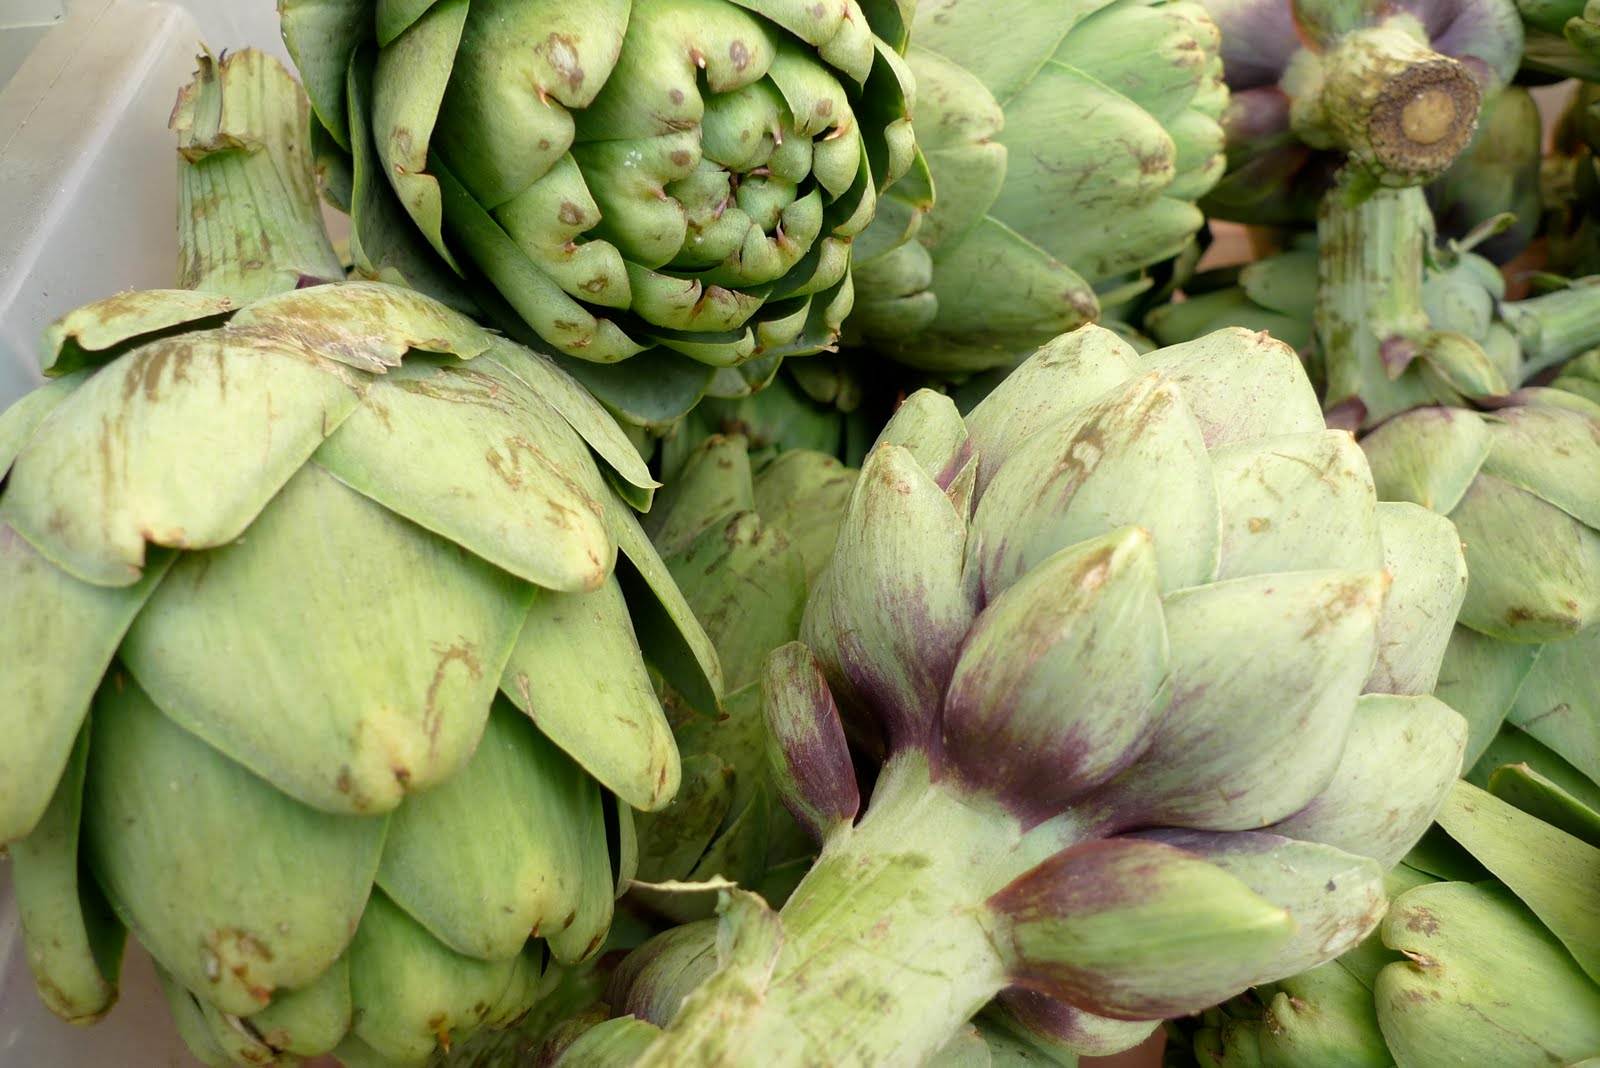 The spice doc edible and medicinal flowers -  Artichoke Flower